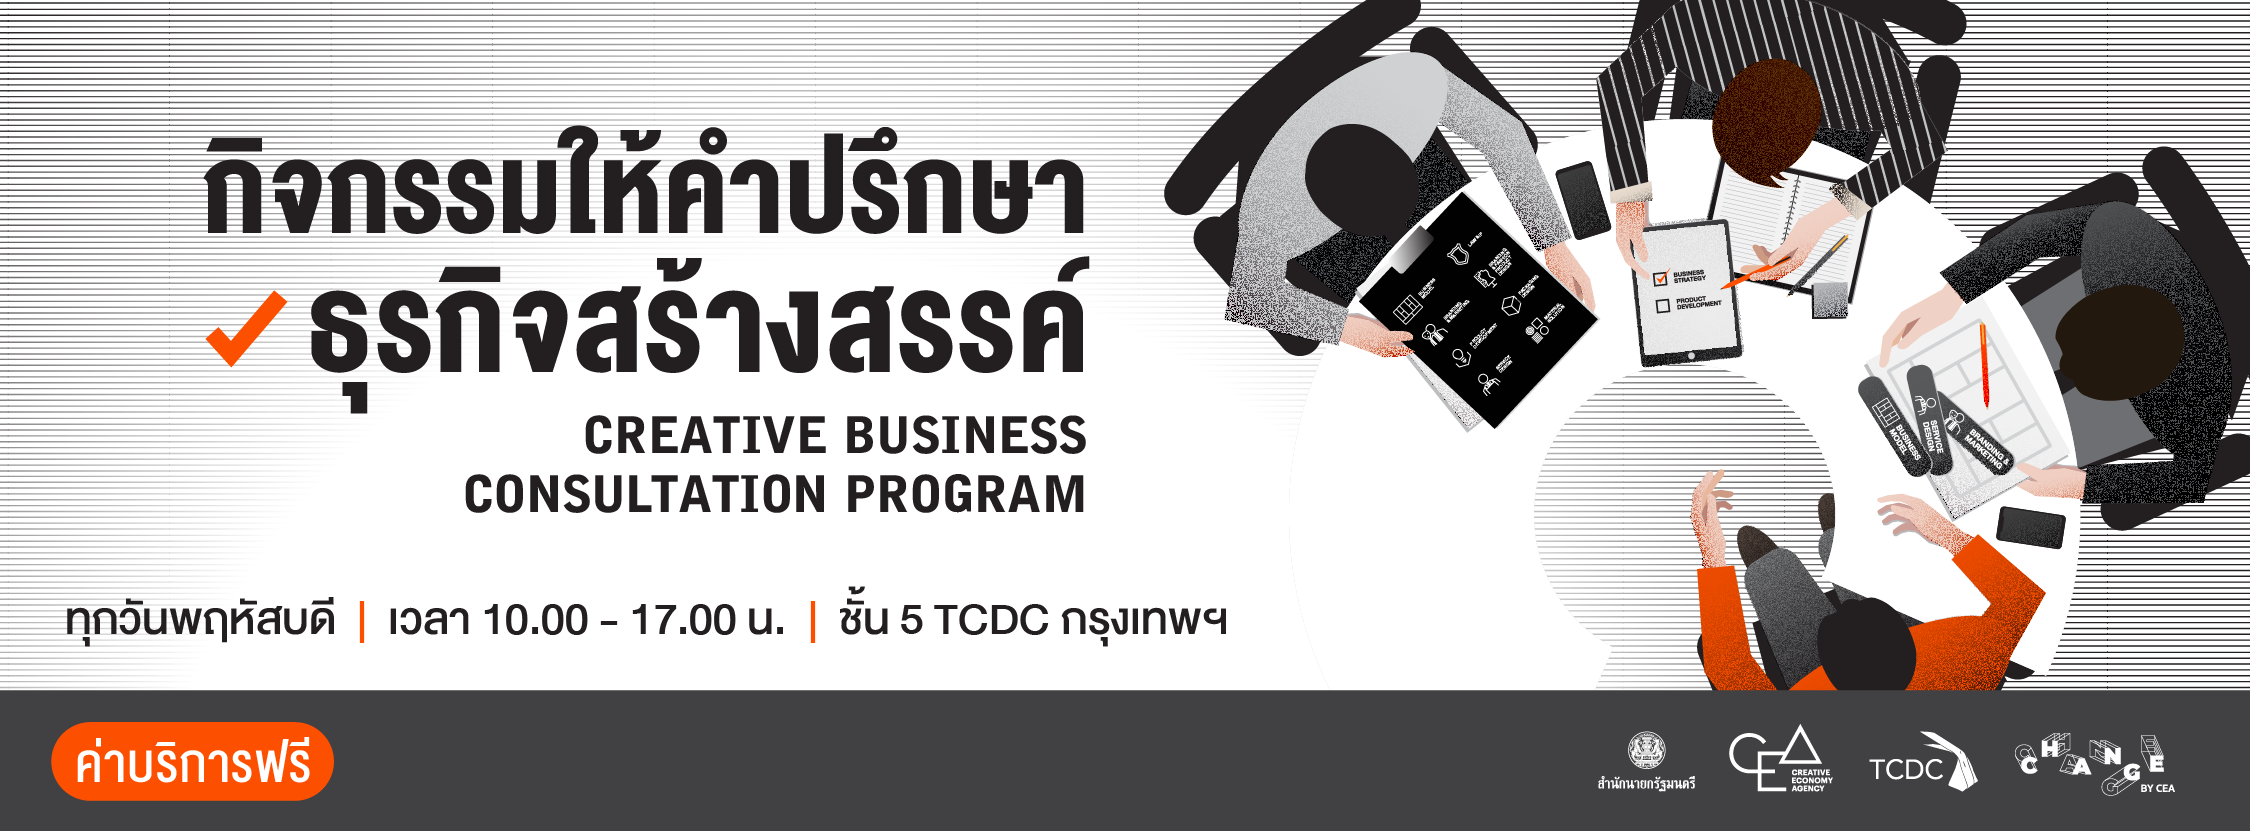 ฺBusiness Consultation Services